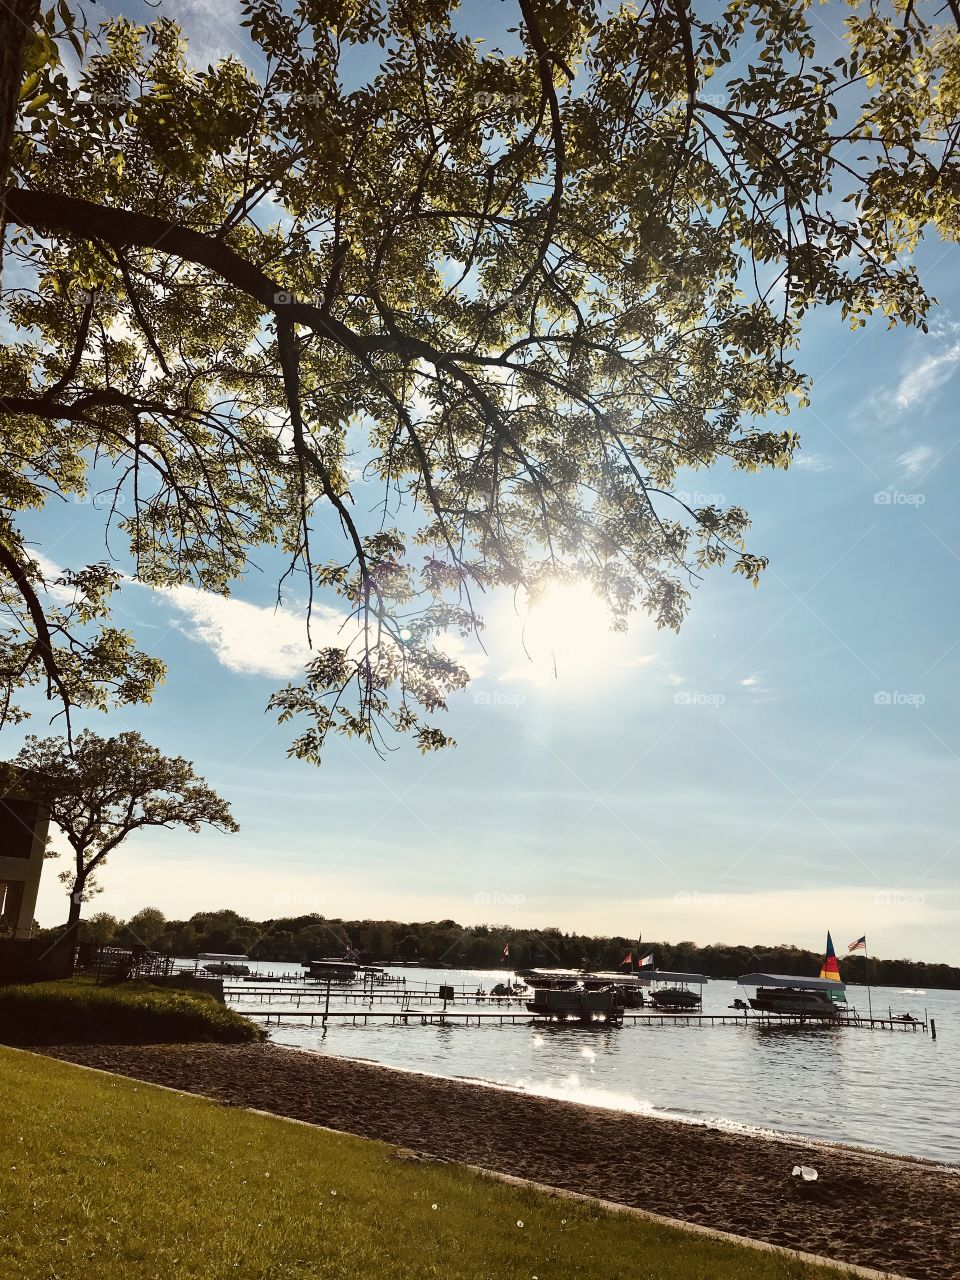 Gorgeous photo of sunny afternoon looking over beautiful lake and dock area full of boats!